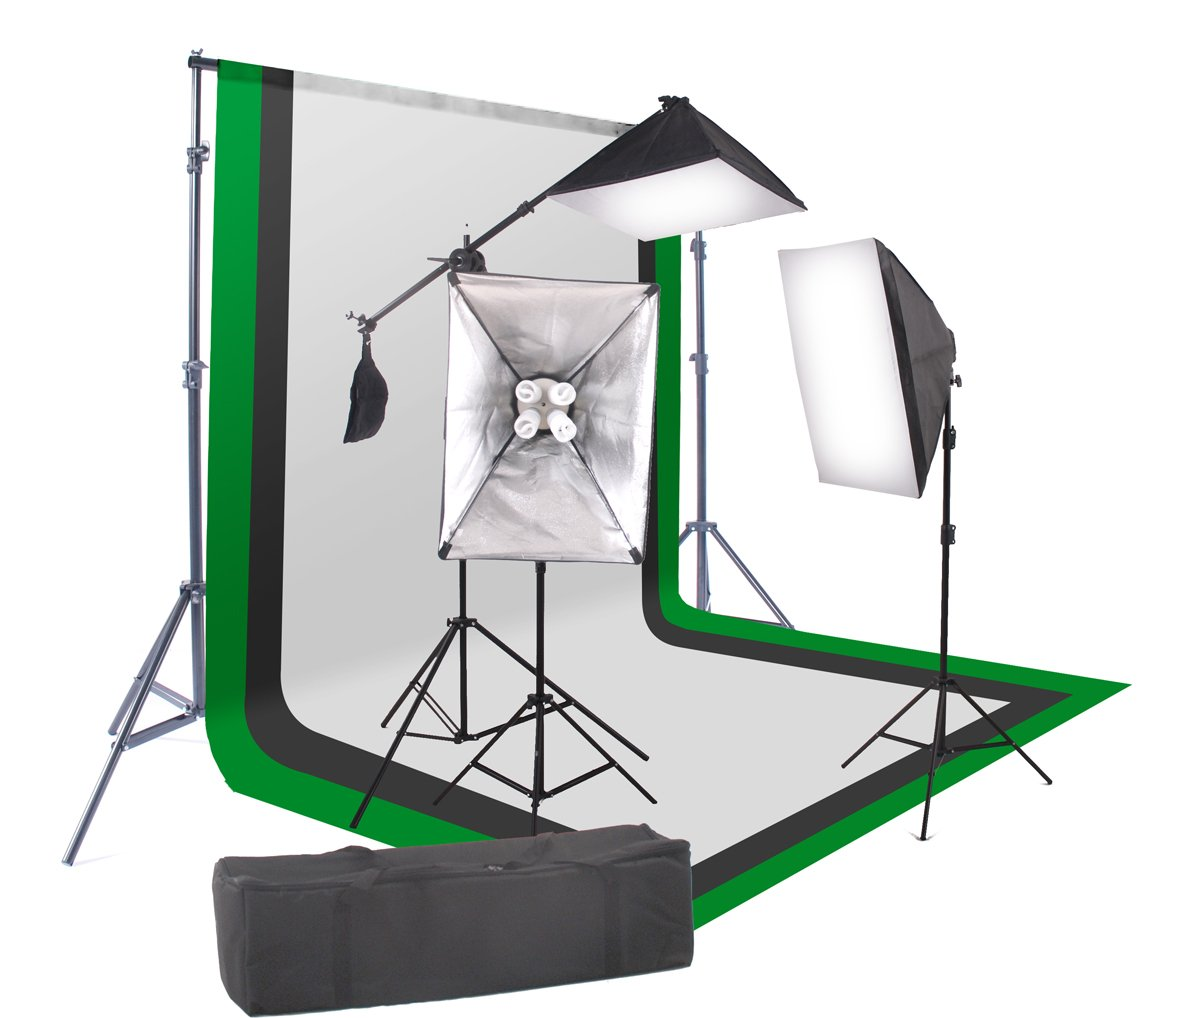 StudioFX 2400 Watt Softbox Continuous Photo Lighting Kit 16''x24'' + Boom Arm and 6'x9' Black, White, Chromakey green Backdrop with Support Stand for Photography Video Studio H9004SB-69BWG by Kaezi by StudioFX